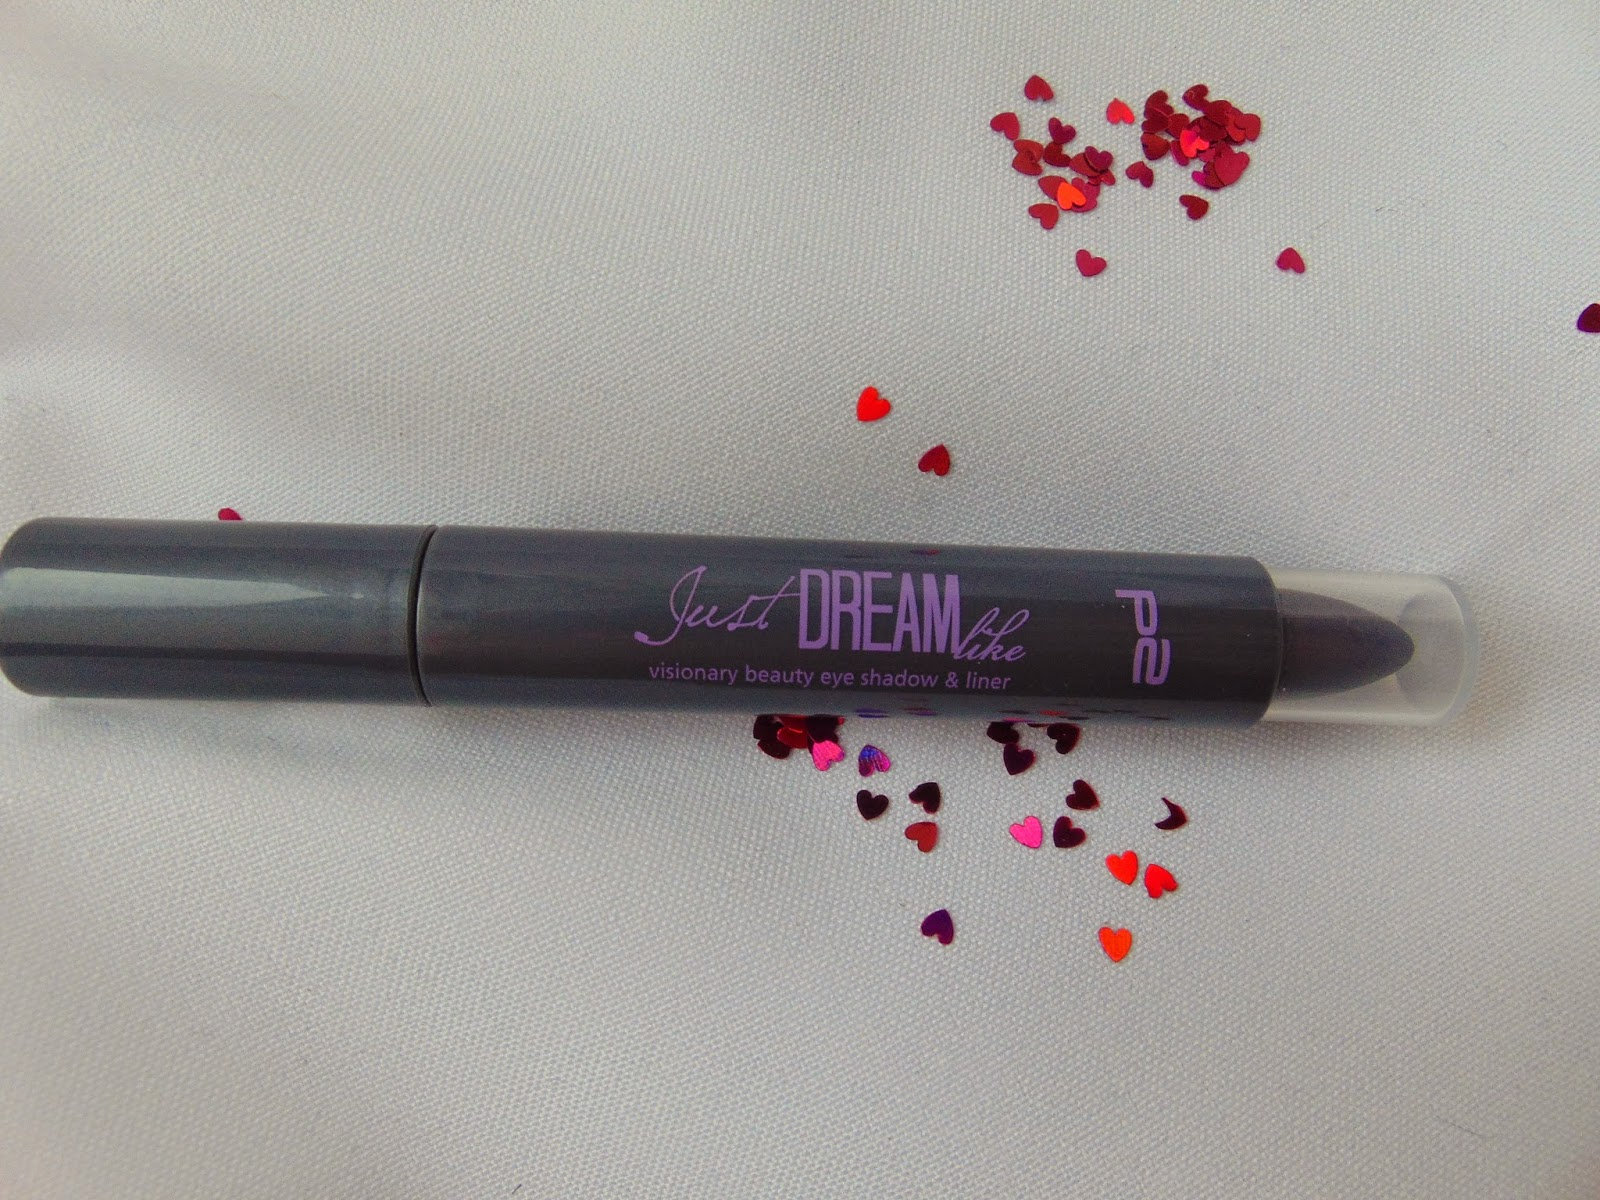 p2 Limited Edition: Just dream like - visionary beauty eye shadow & liner - Modern Violet - www.annitschkasblog.de